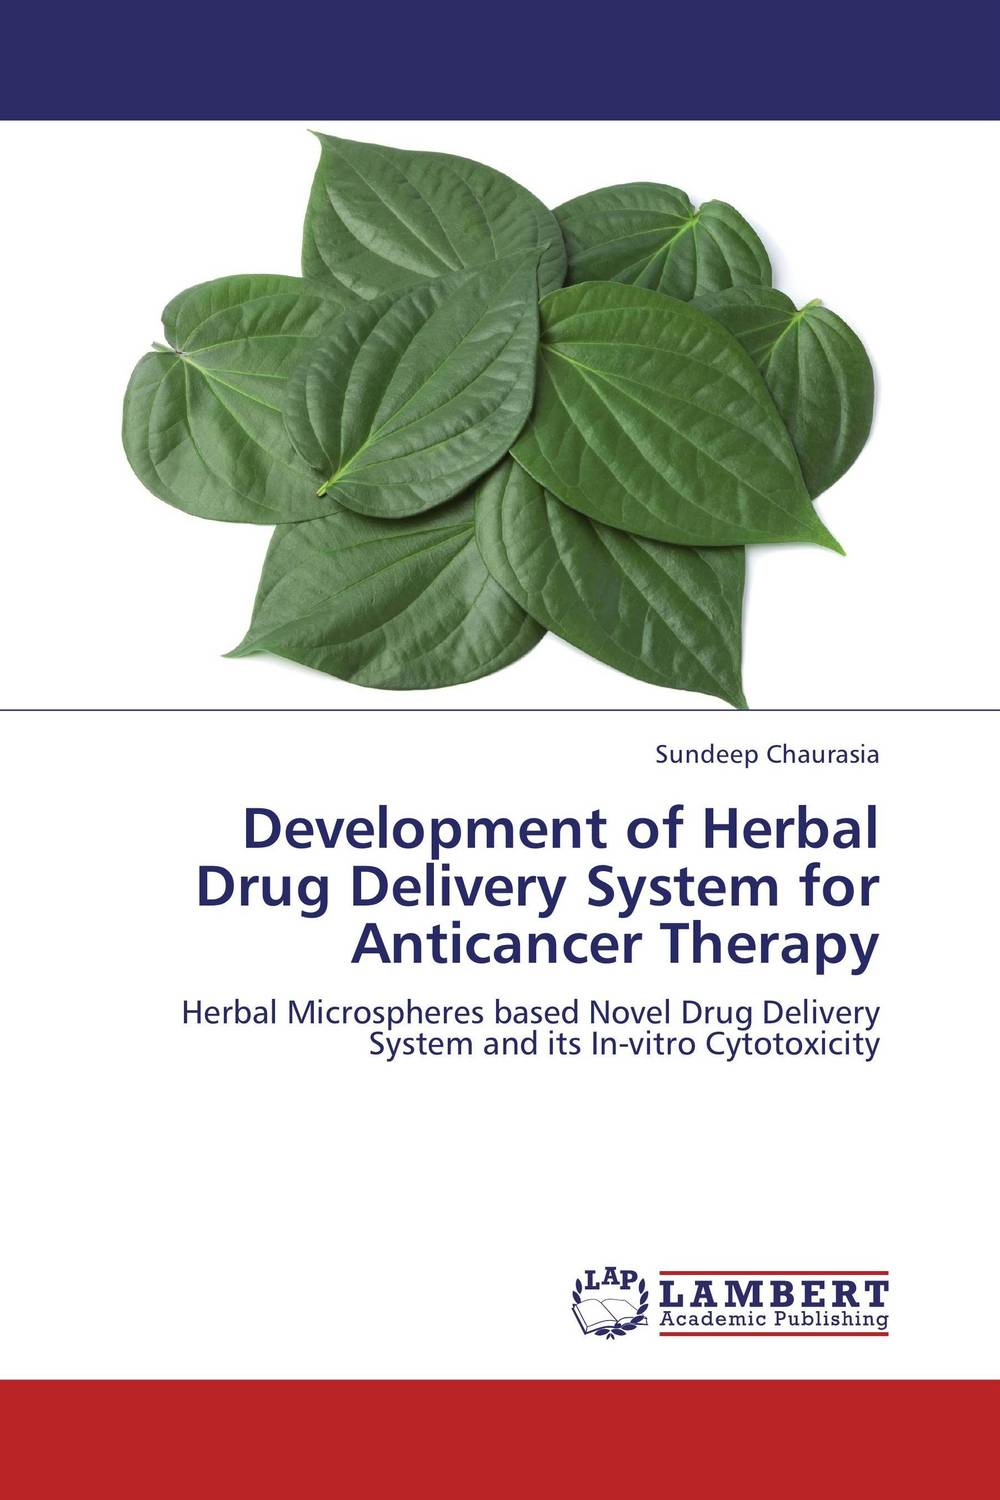 Development of Herbal Drug Delivery System for Anticancer Therapy abhishek kumar sah sunil k jain and manmohan singh jangdey a recent approaches in topical drug delivery system